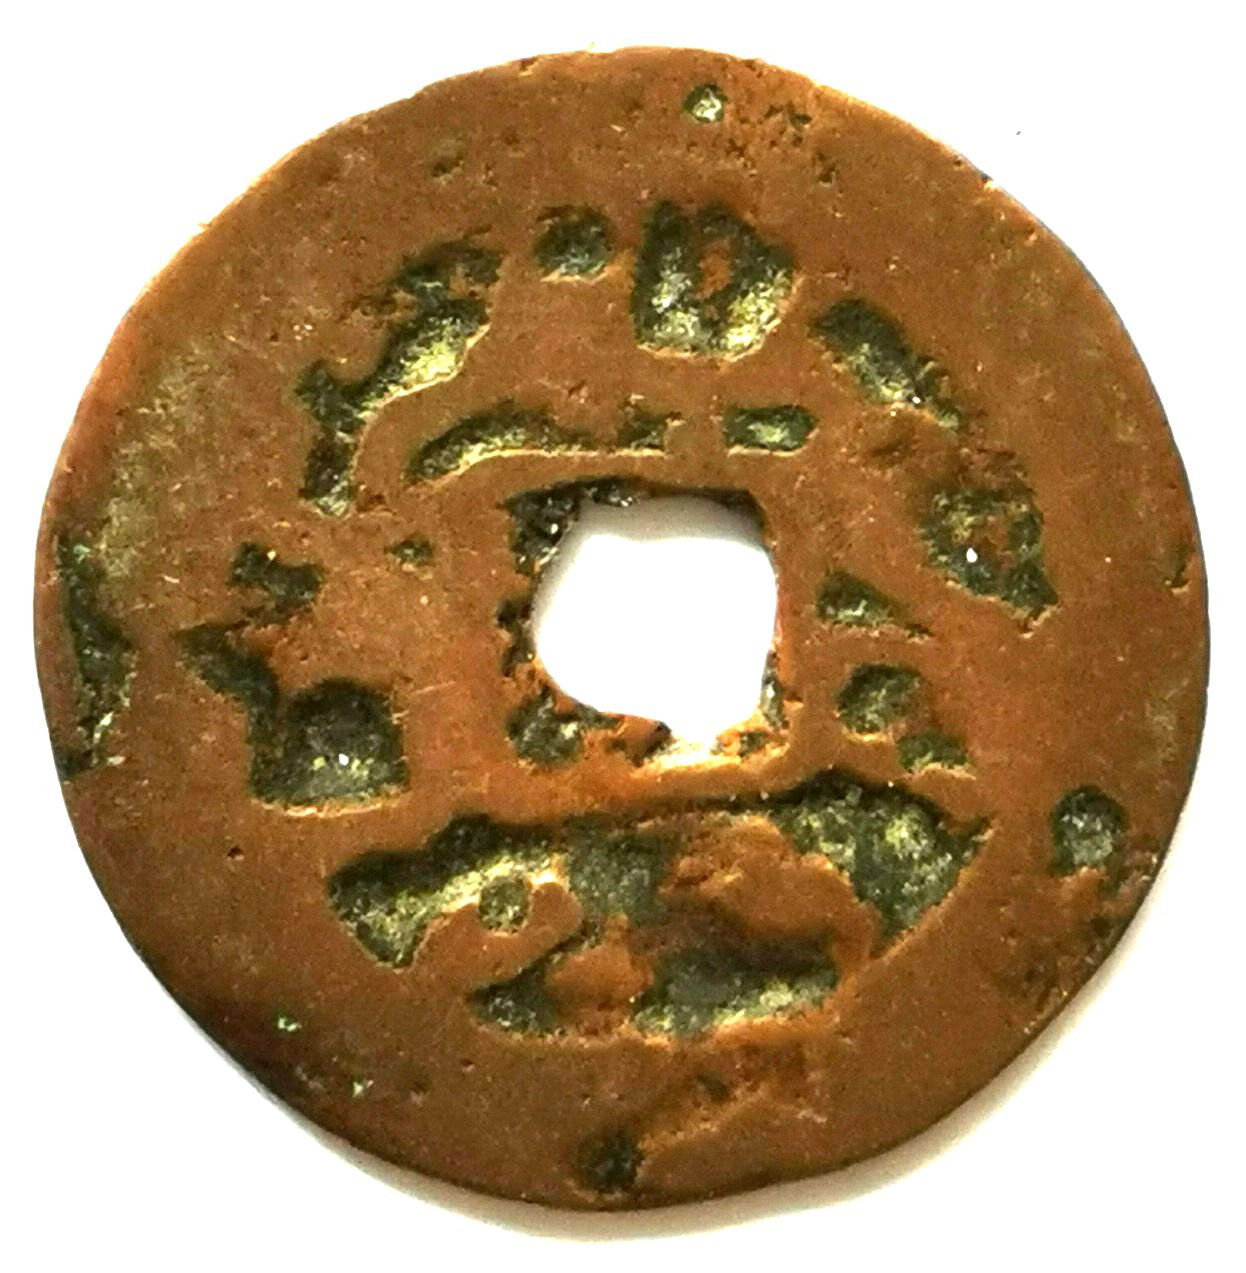 XJ3001, Sinkiang (Xinjiang) Coin of Ghazi Rashid (Rebels), 1864